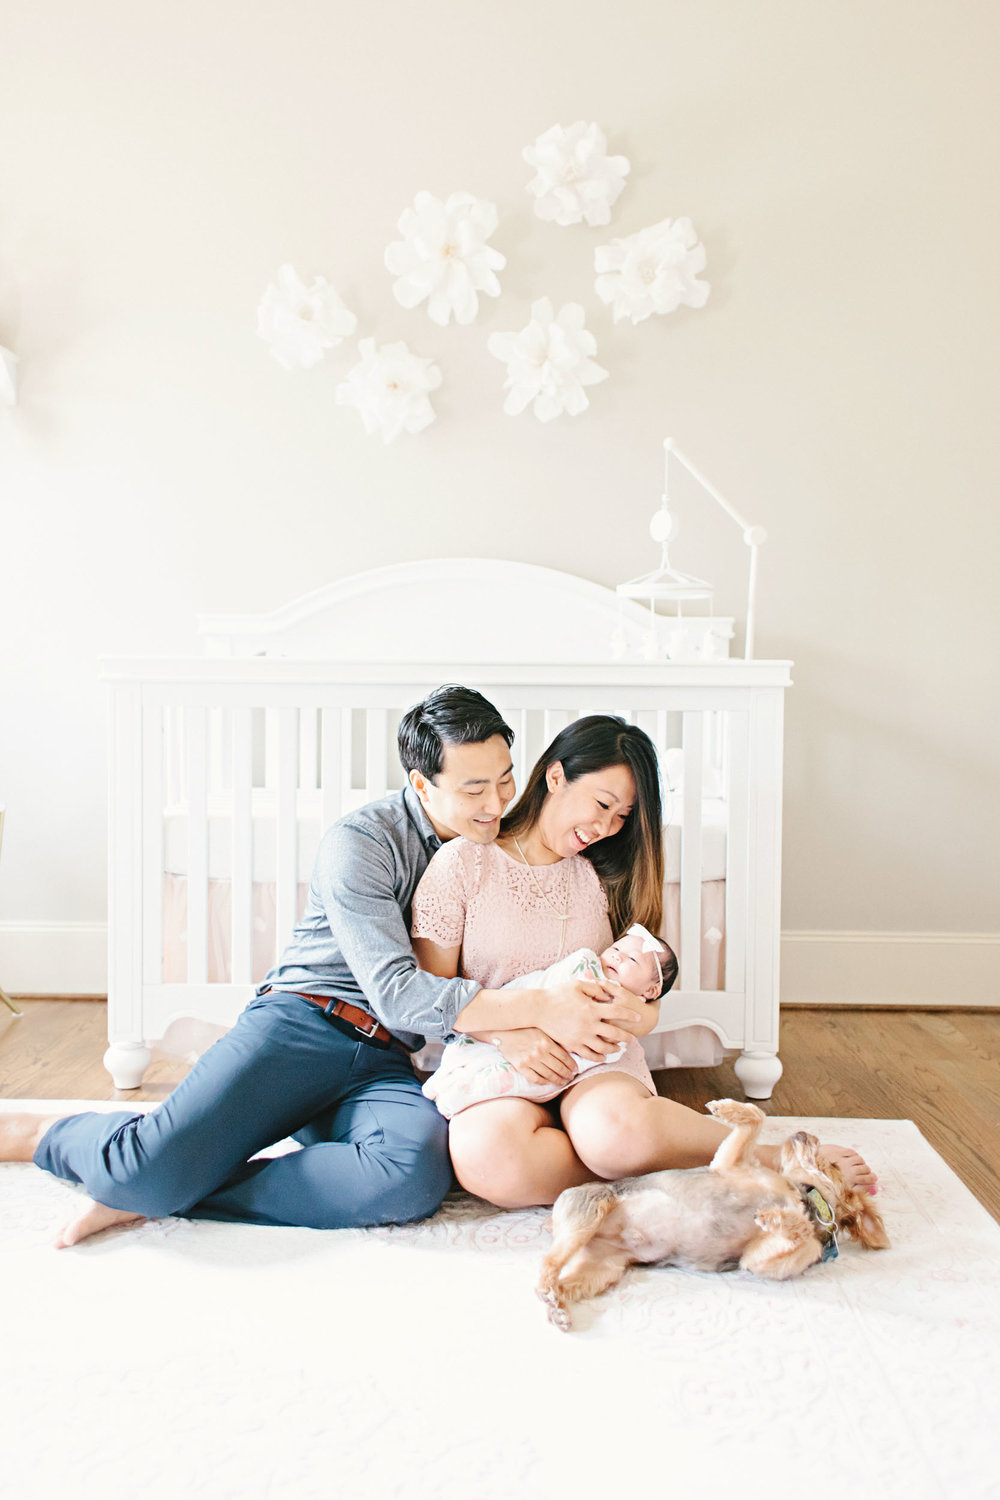 Lifestyle Newborn Photographer_Cassie Schott Photography_Houston_Chicago.jpg